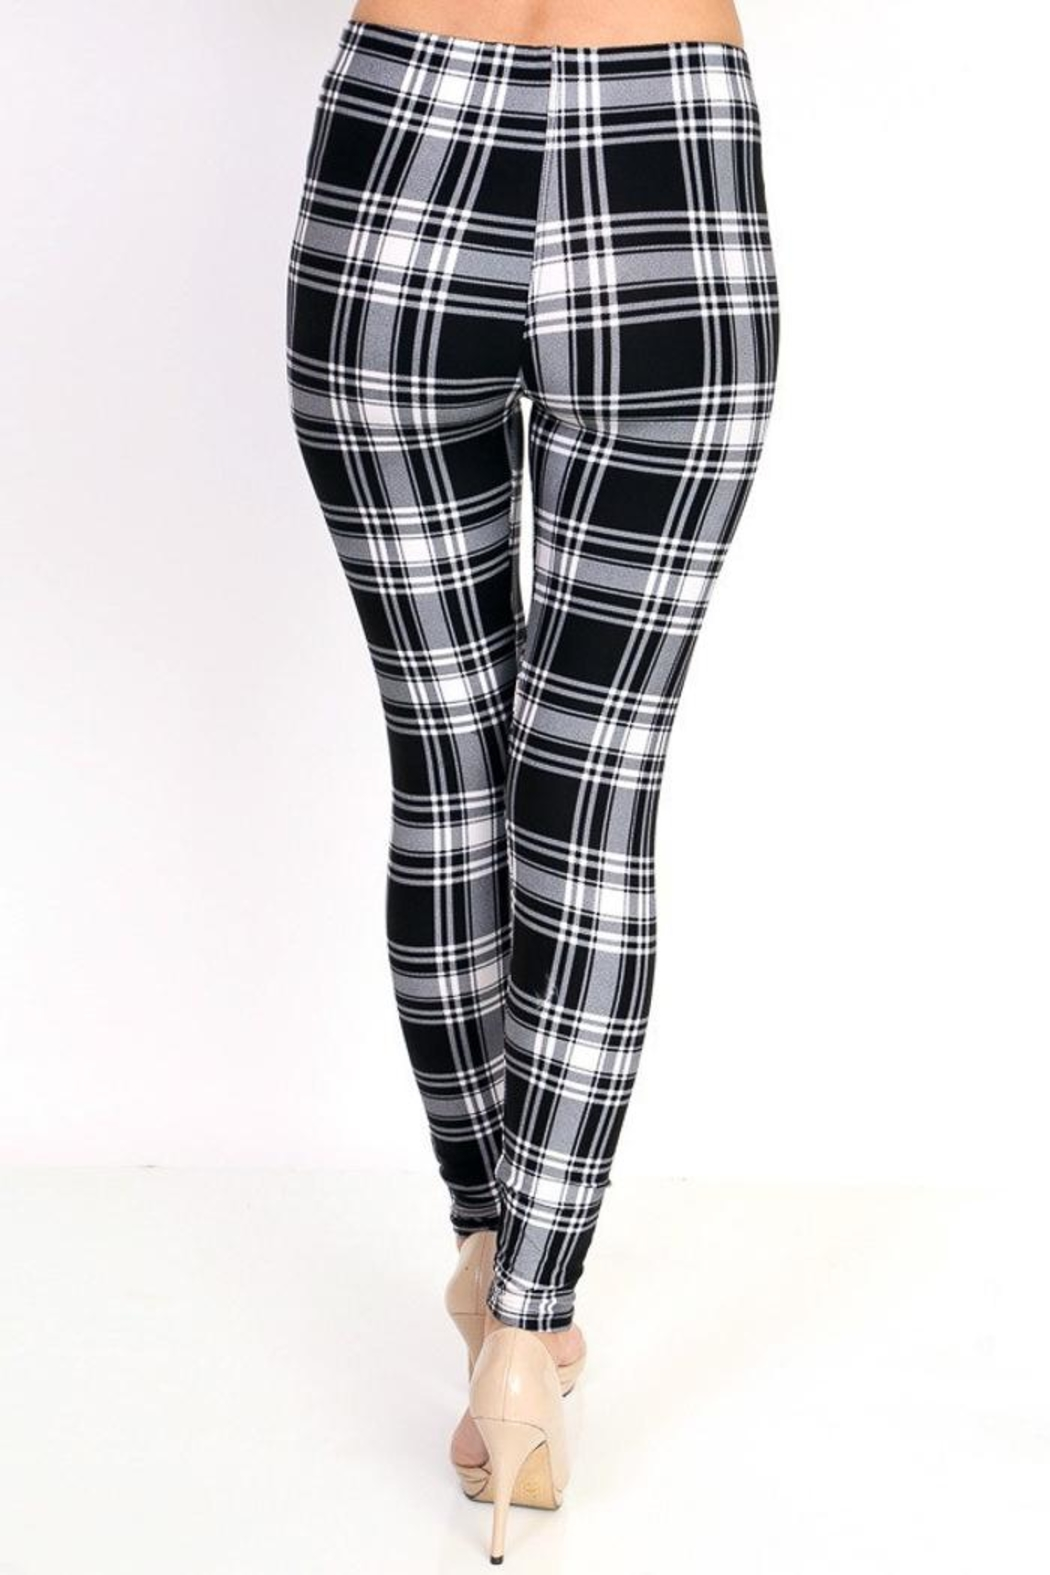 People Outfitter Black&White Plaid Leggings - Side Cropped Image